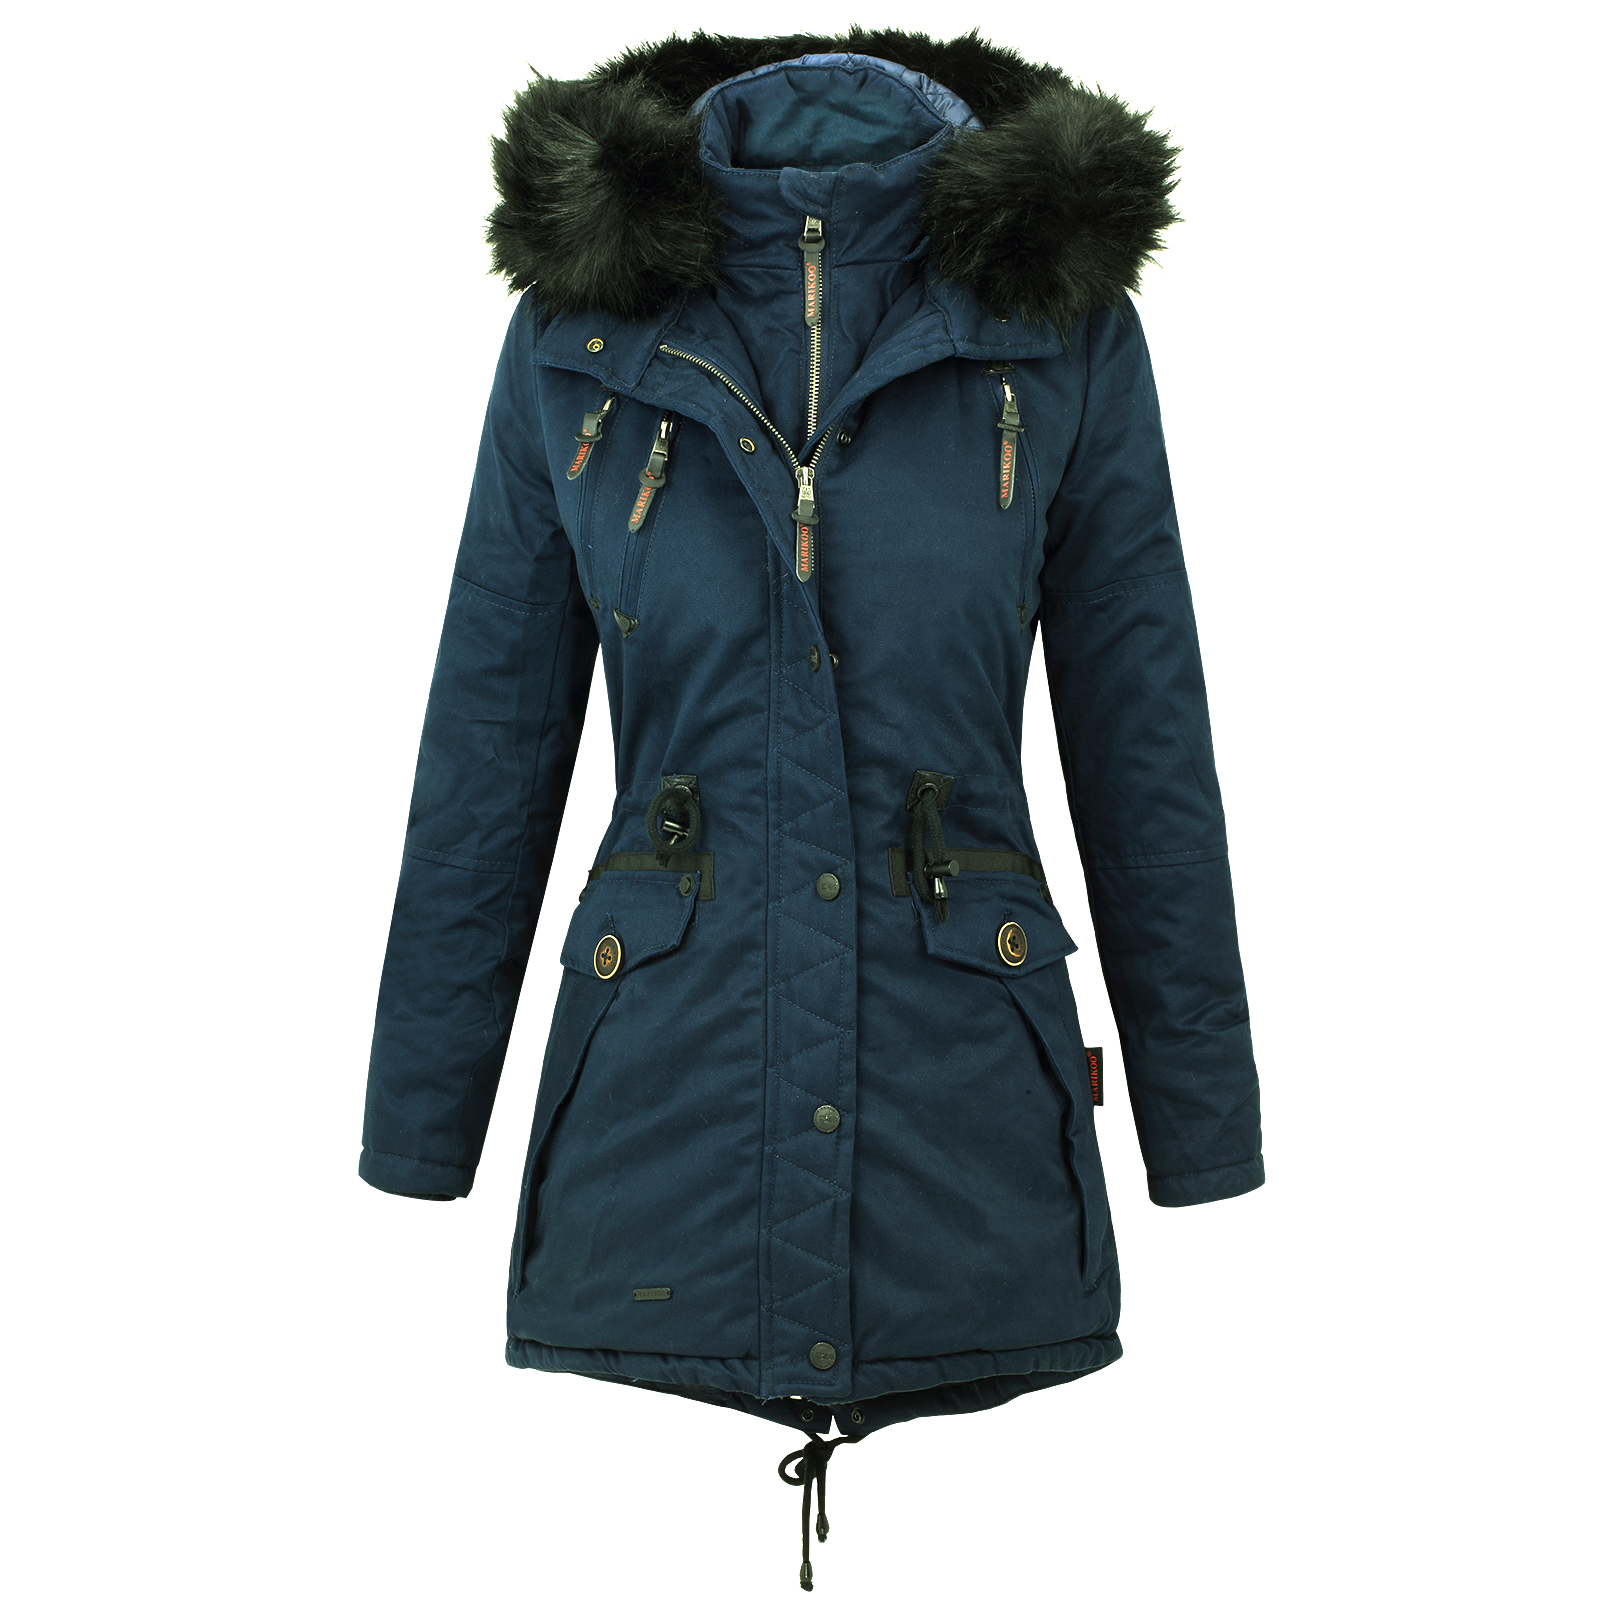 marikoo rose damen winter jacke stepp mantel parka. Black Bedroom Furniture Sets. Home Design Ideas